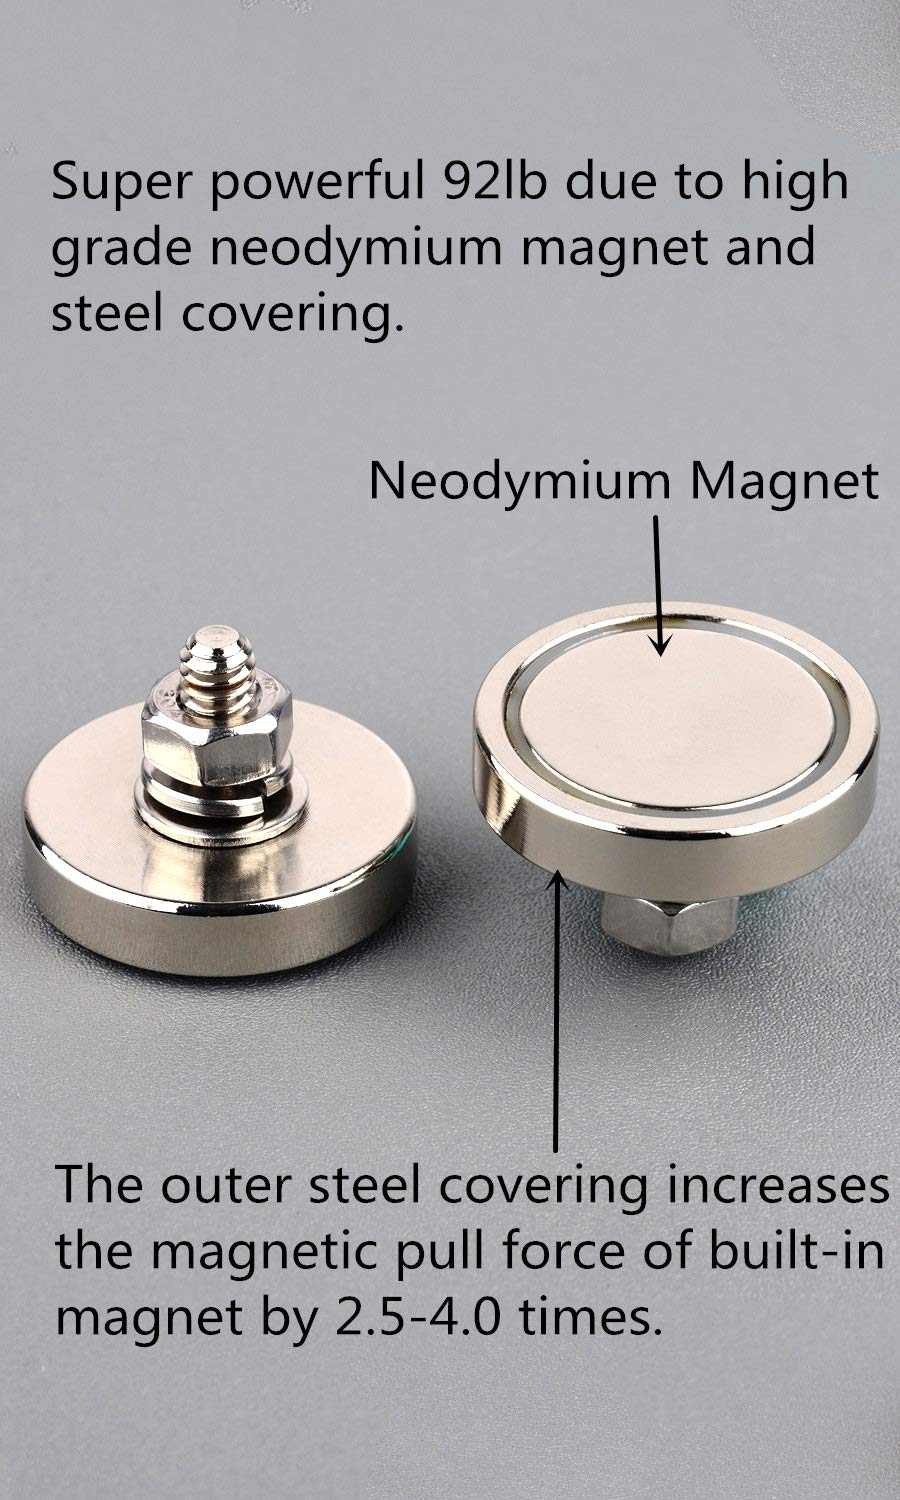 MUTUACTOR 2Pack Super Powerful Neodymium Cup Magnet with 1//4-20 Male Threaded Stud Camera and Other Brackets. 100lb Vertical Pull-Force Non-Shattering Magnet Base with Nut and Washer for Lighting